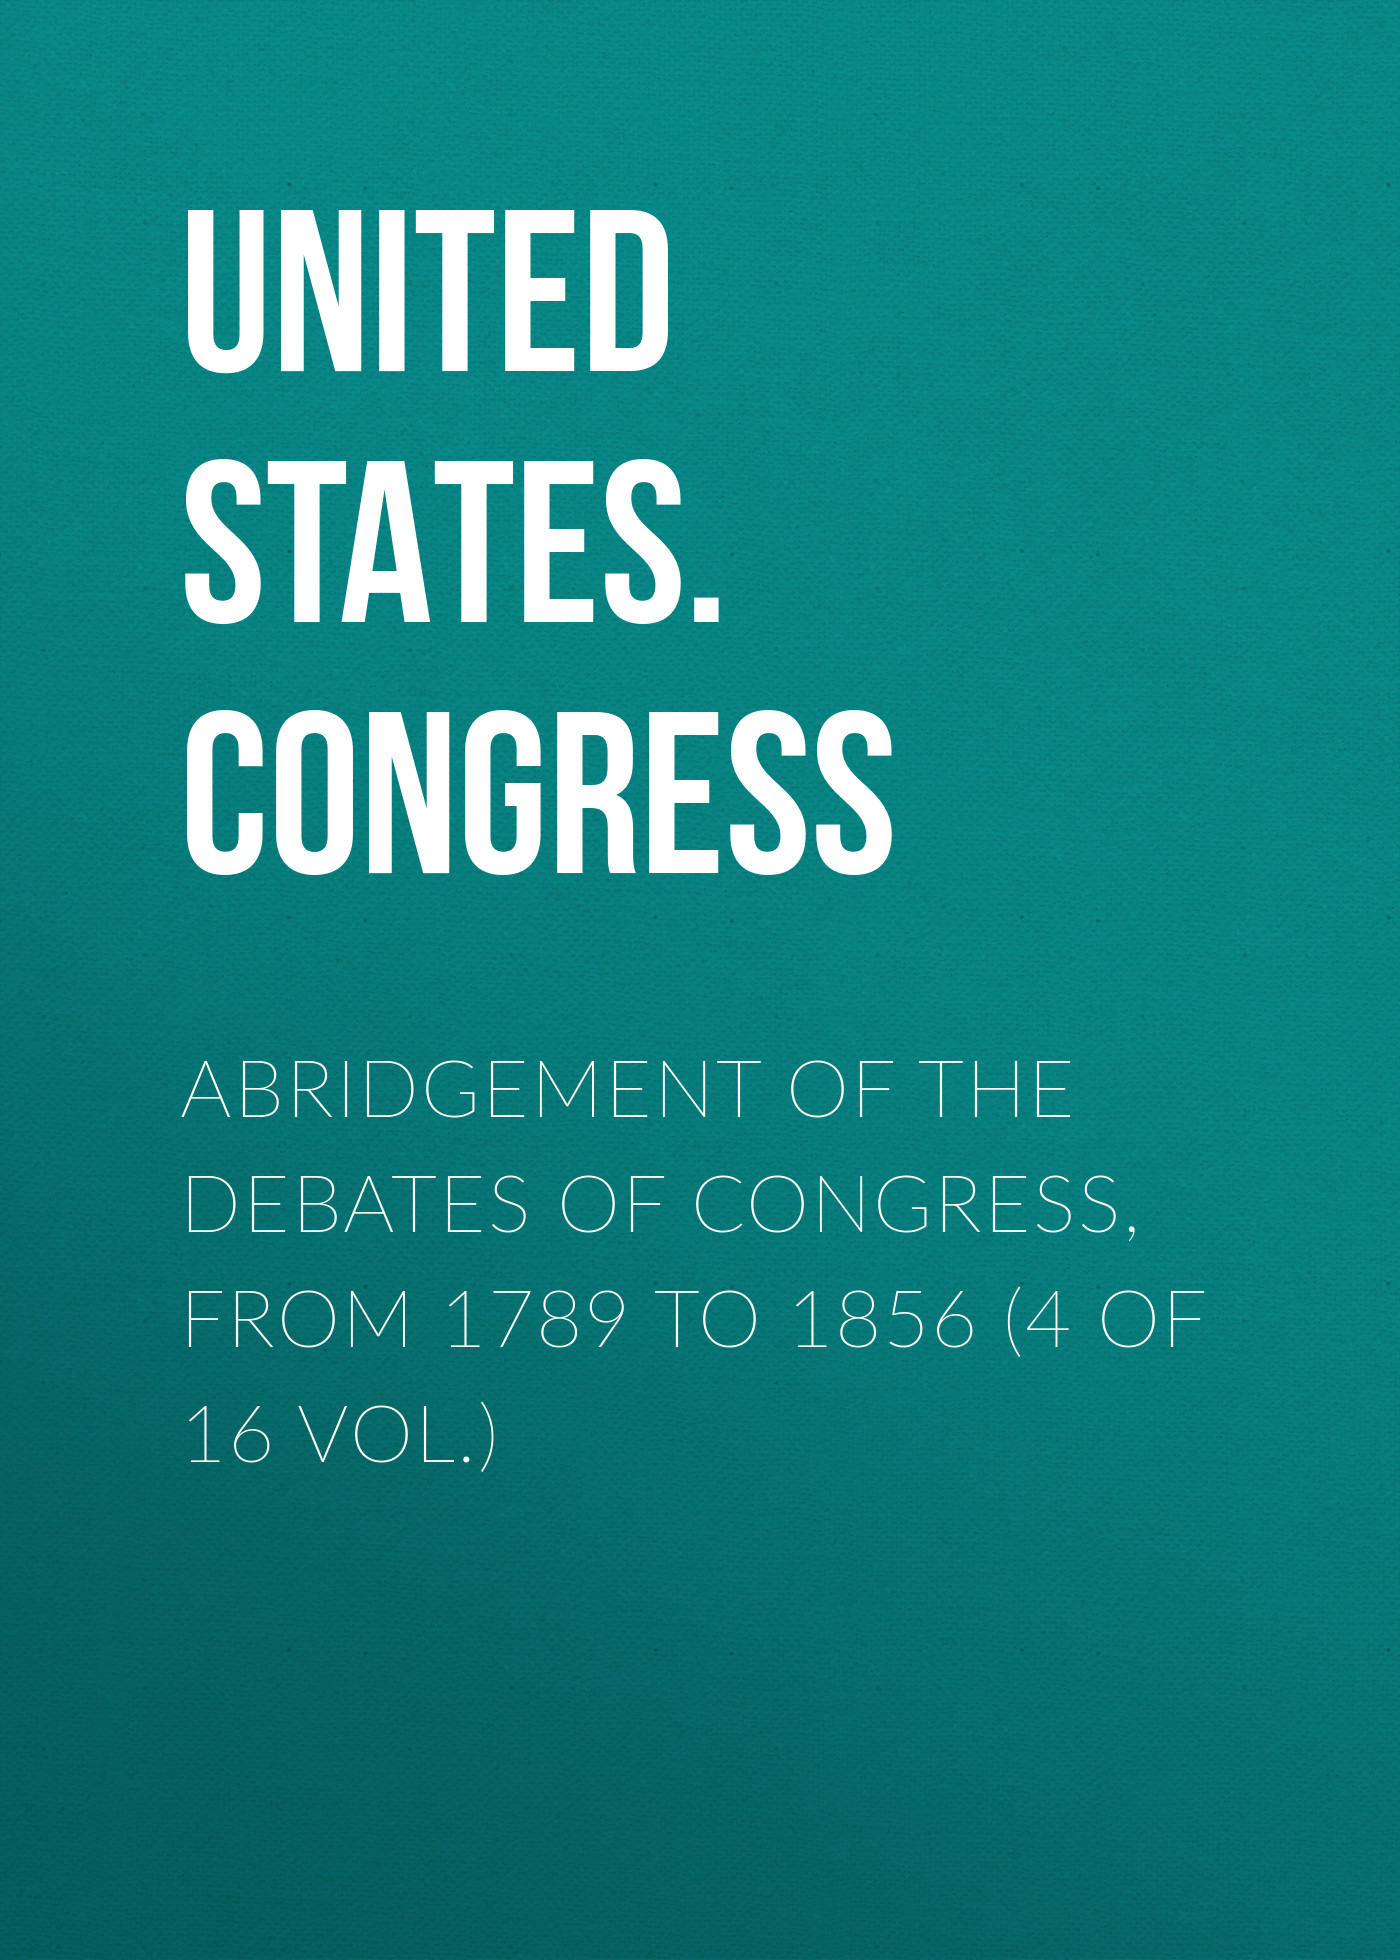 лучшая цена United States. Congress Abridgement of the Debates of Congress, from 1789 to 1856 (4 of 16 vol.)